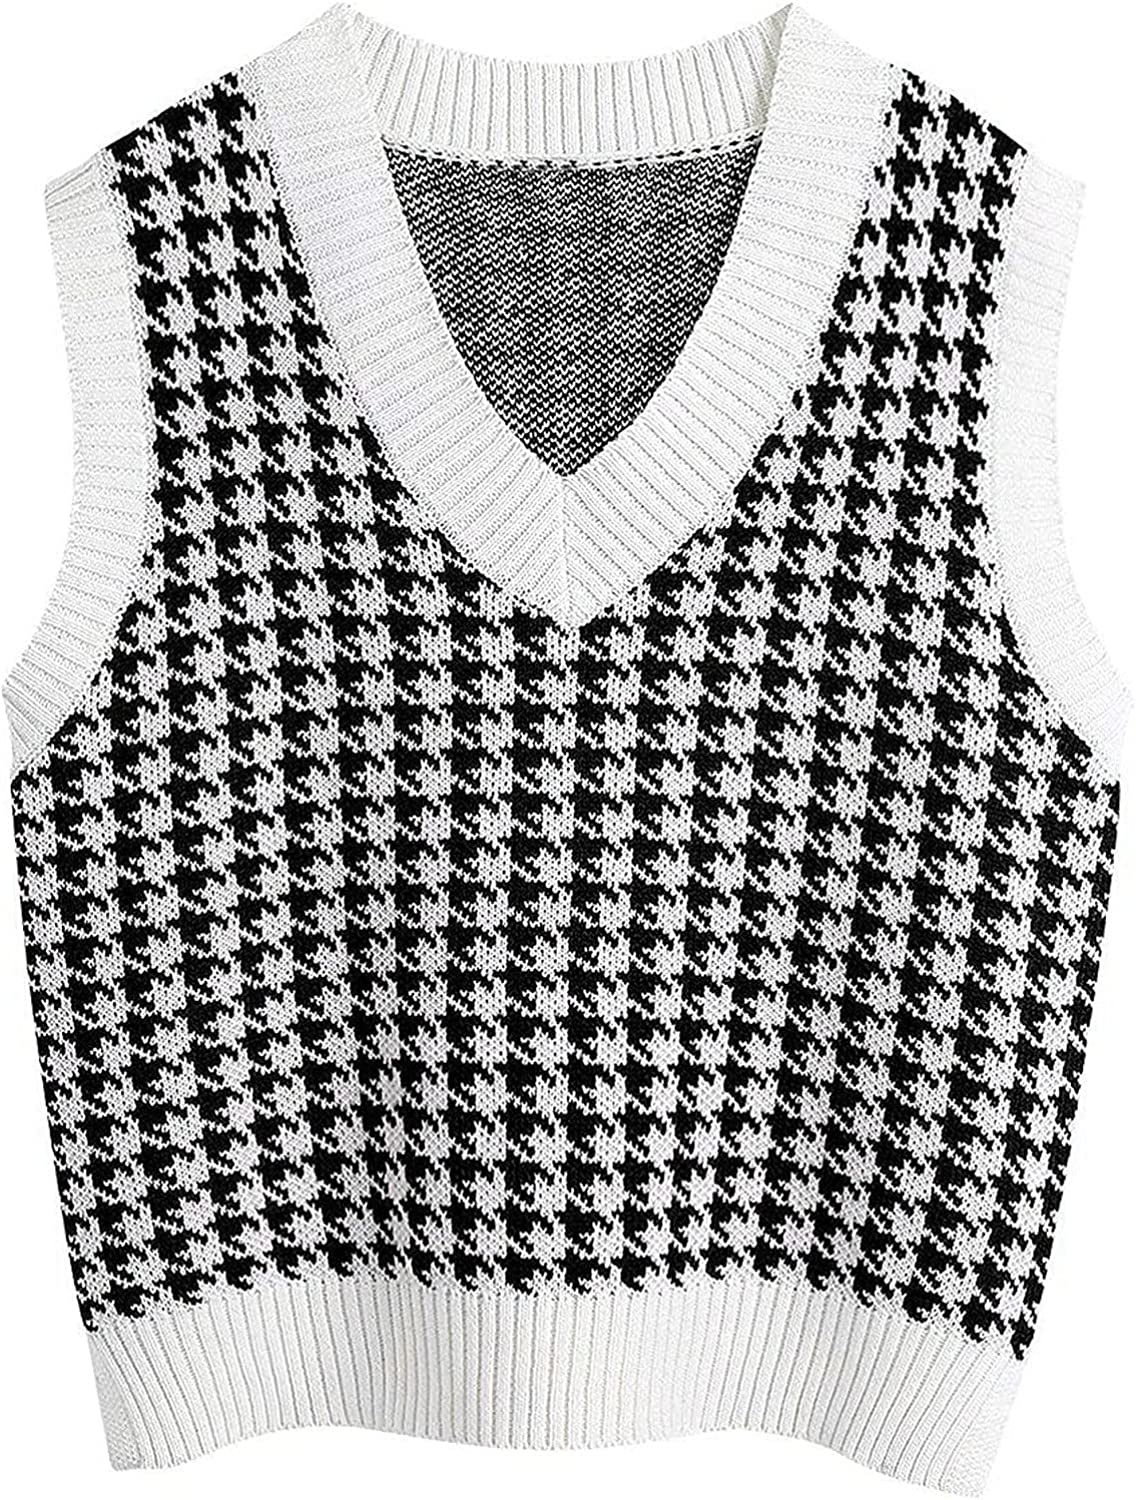 Women Casual Cute V-Neck Sweater Vest Fashion Leopard Stitching Loose Collision Color Sleeveless Comfy Warm Tunic Shirt Tops